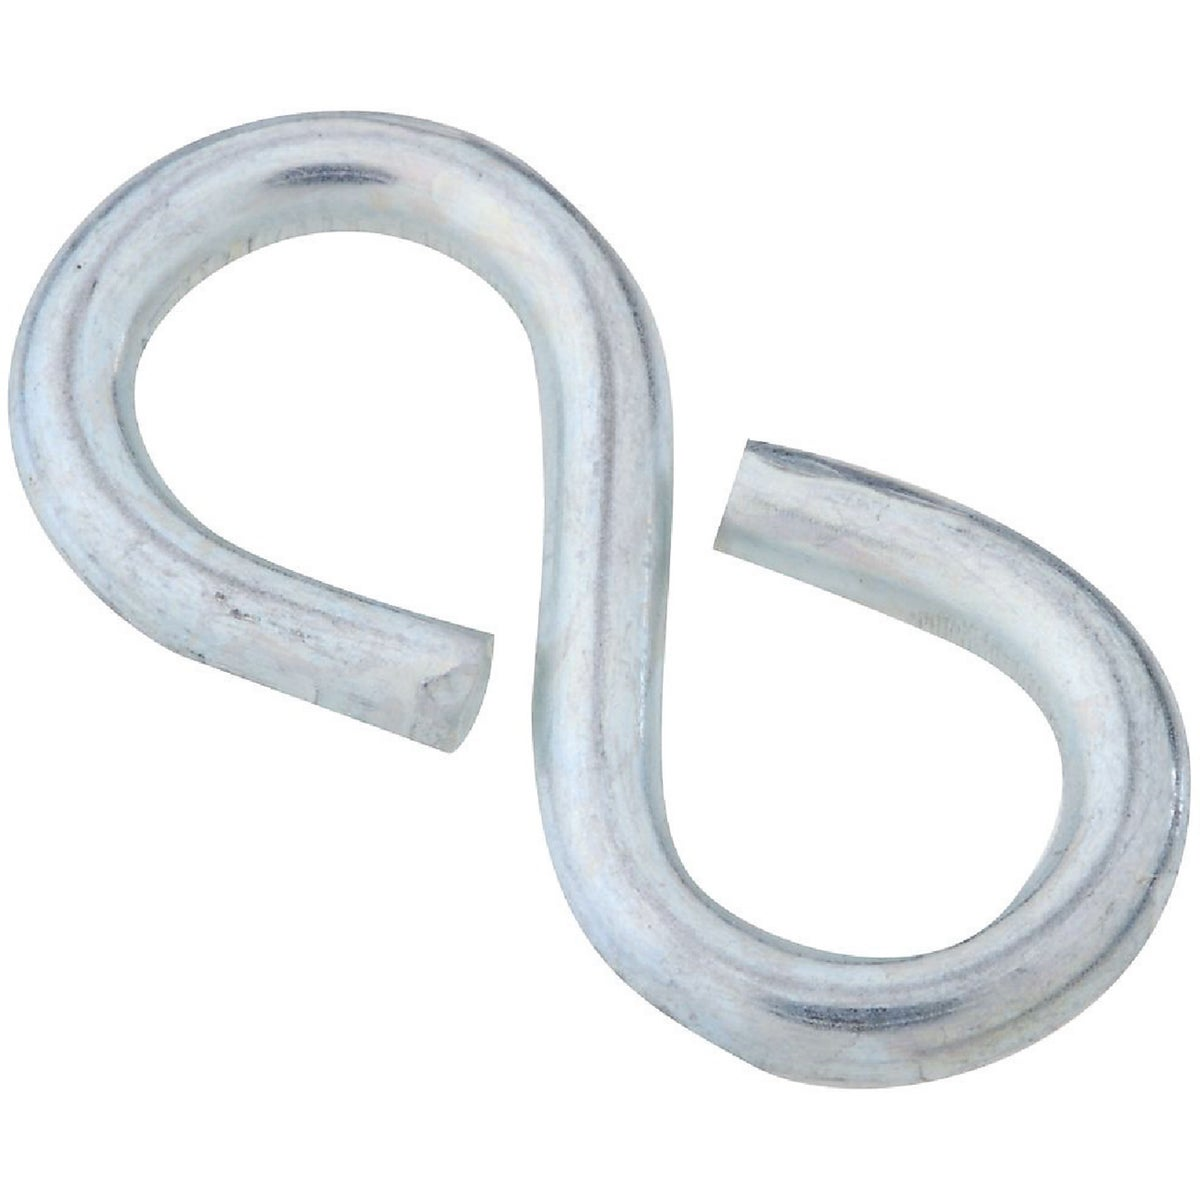 #811 LIGHT CLOSED S HOOK - N121350 by National Mfg Co